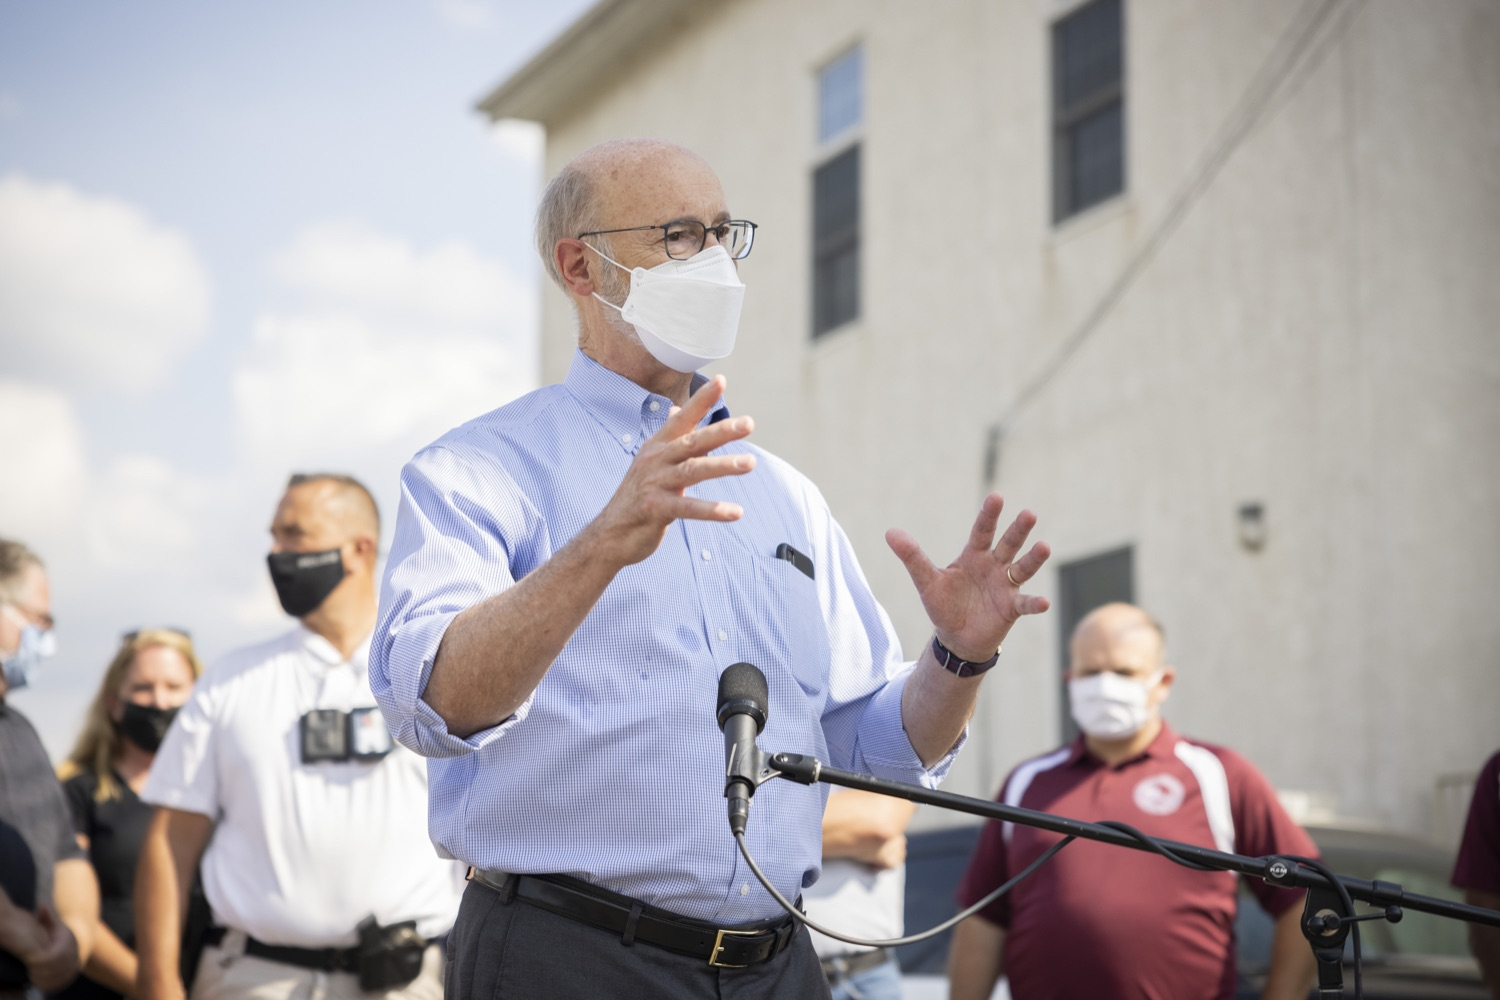 """<a href=""""https://filesource.wostreaming.net/commonwealthofpa/photo/19109_gov_stormDamage_dz_019.jpg"""" target=""""_blank"""">⇣Download Photo<br></a>Pennsylvania Governor Tom Wolf speaking with the press.   Governor Wolf visited the Borough of Bridgeport to tour some of the areas affected by the remnants of Ida. The governor, joined by local officials, viewed and discussed the impact to damaged areas, including businesses, homes and infrastructure. Bridgeport, PA - September 08, 2021"""